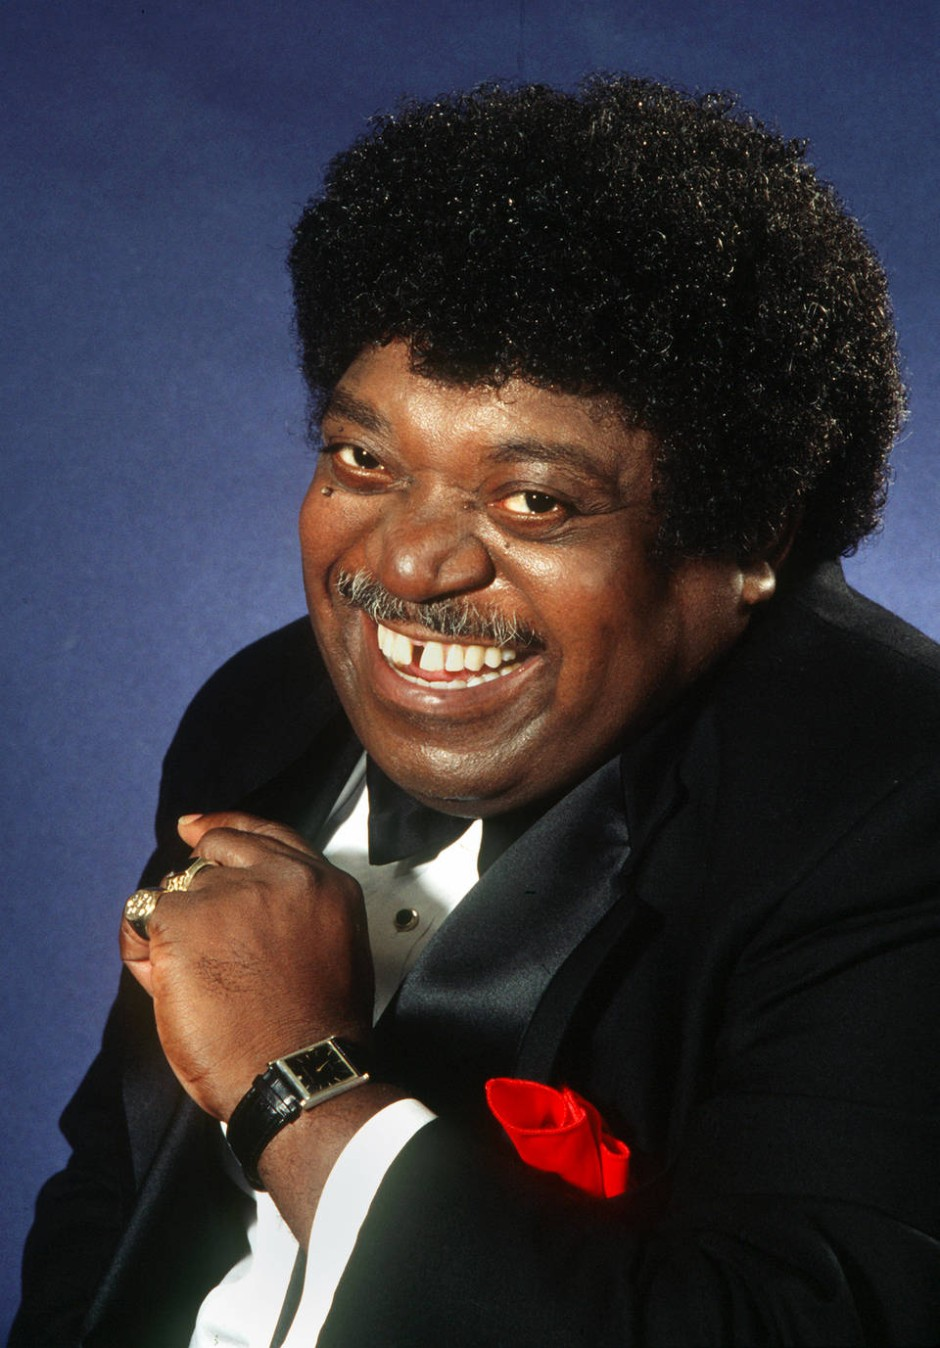 percy-sledge-1940-bis-2015.jpg (940×1348)